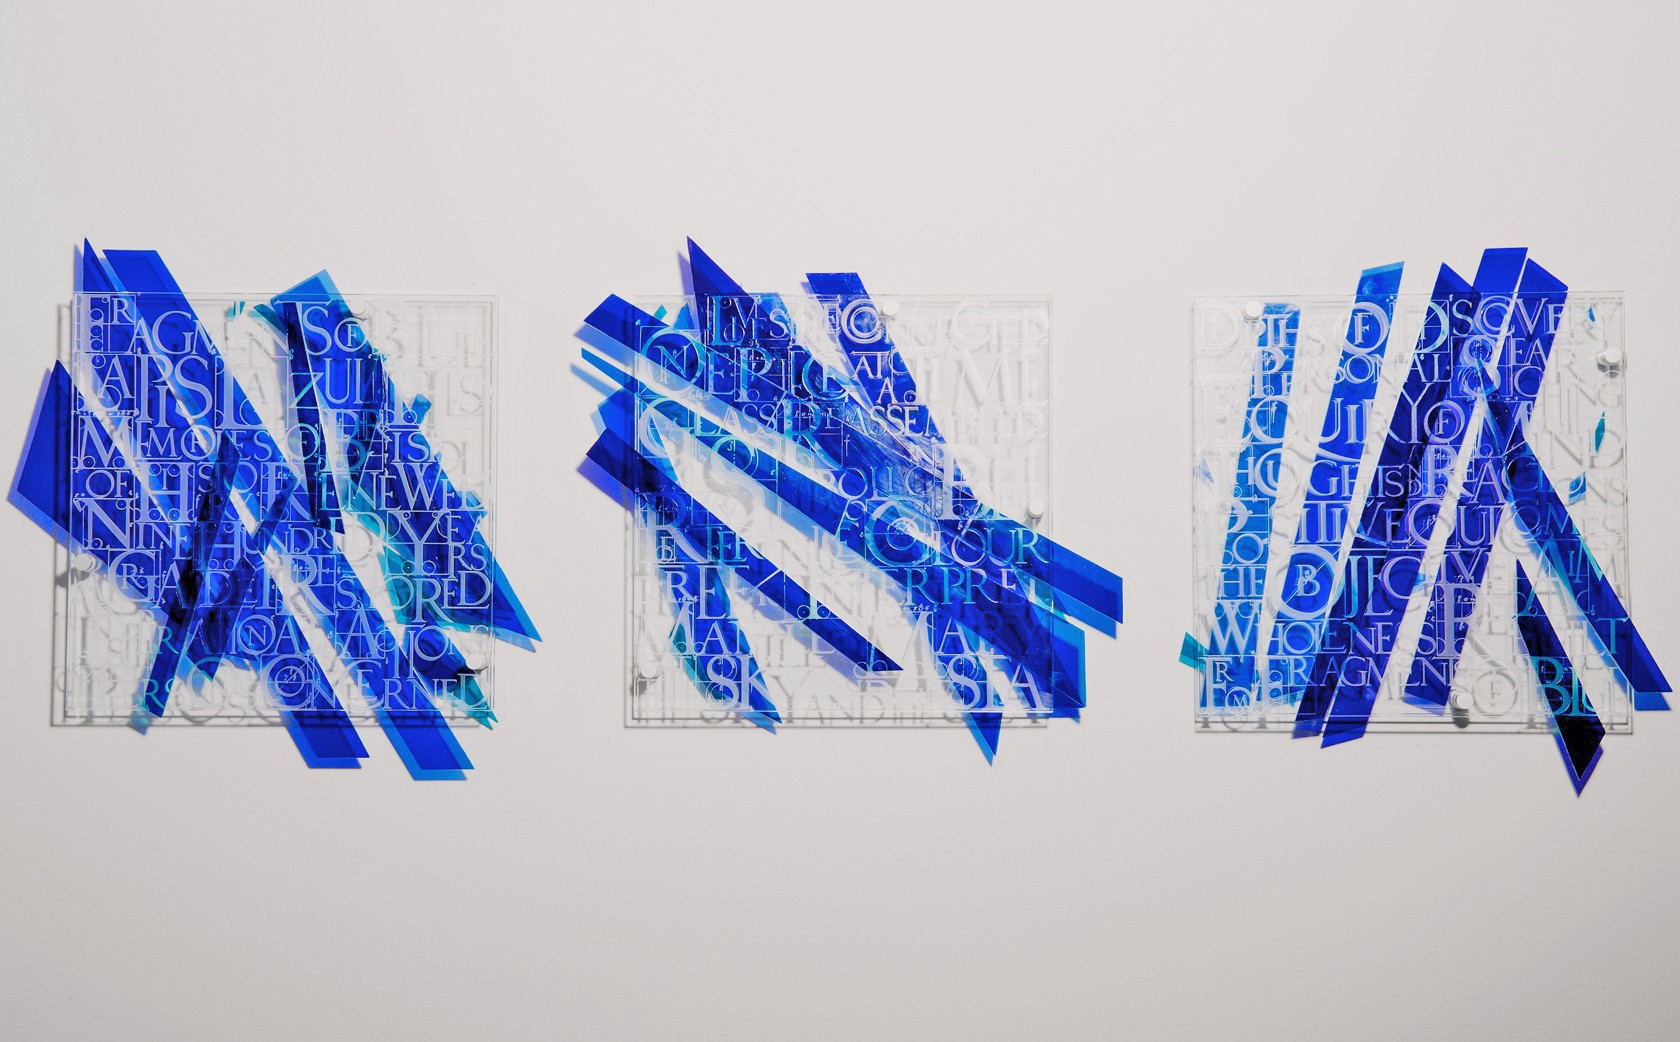 Wall Glass Sculpture Fragments of Blue by Denise Mt Basso for Vessel Gallery Notting Hill